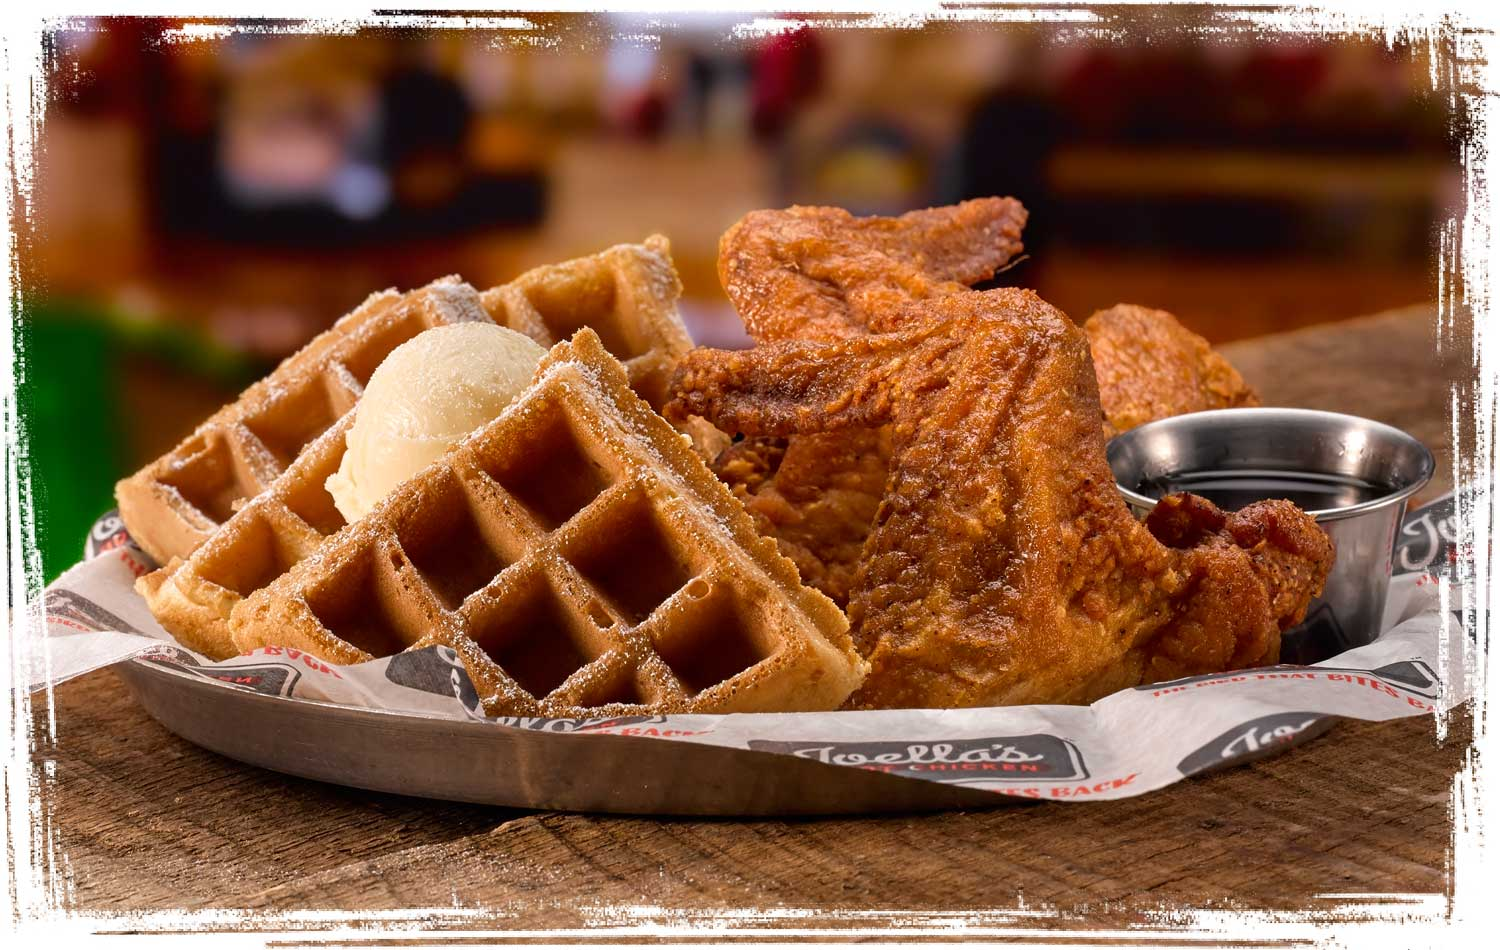 Joella's Chicken and Waffles plate